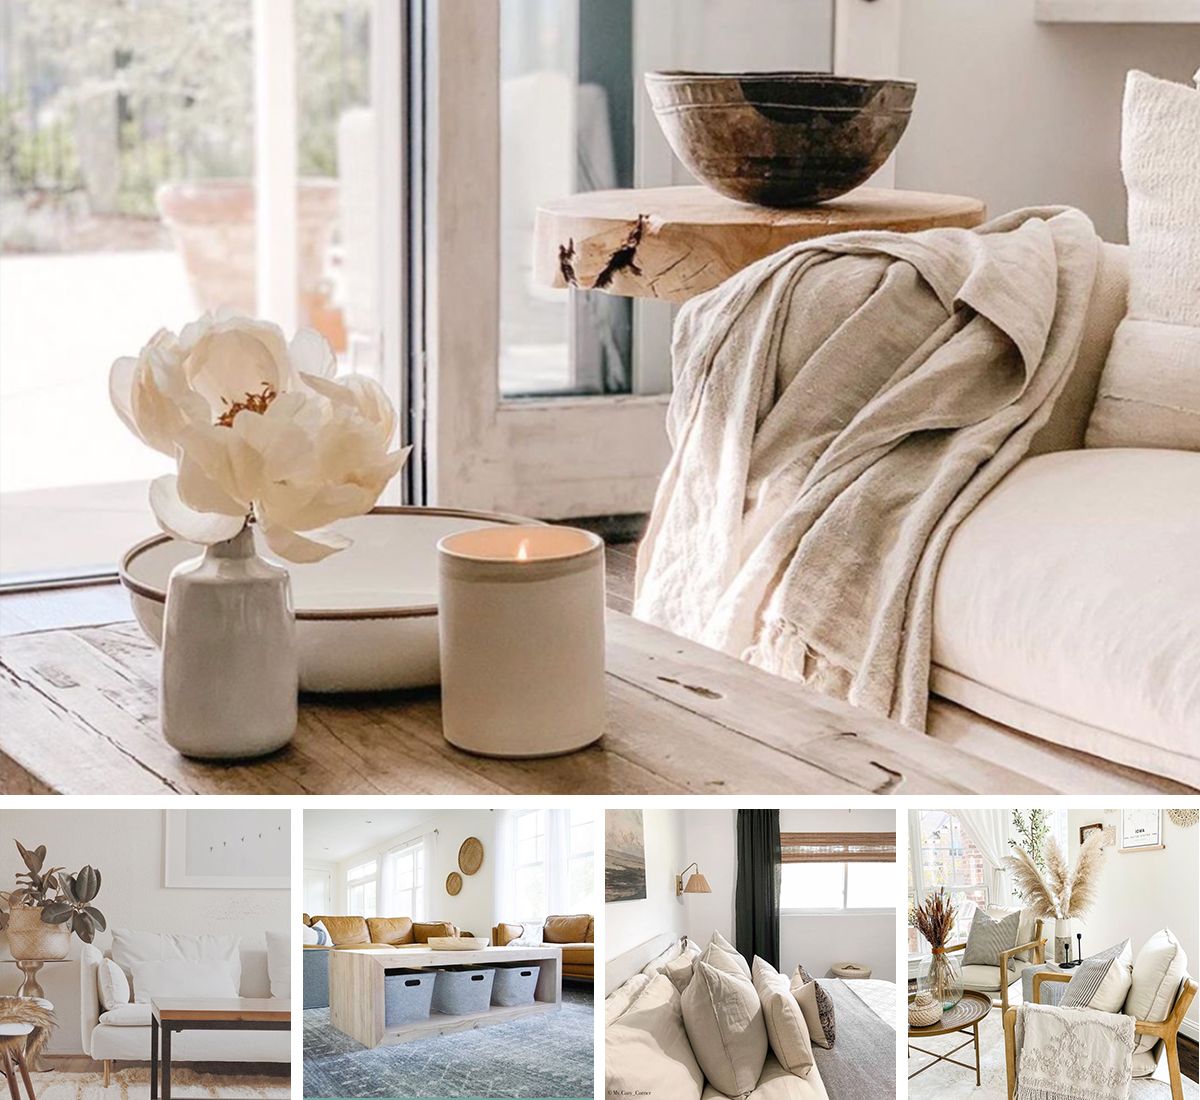 dreamy neutral interior design